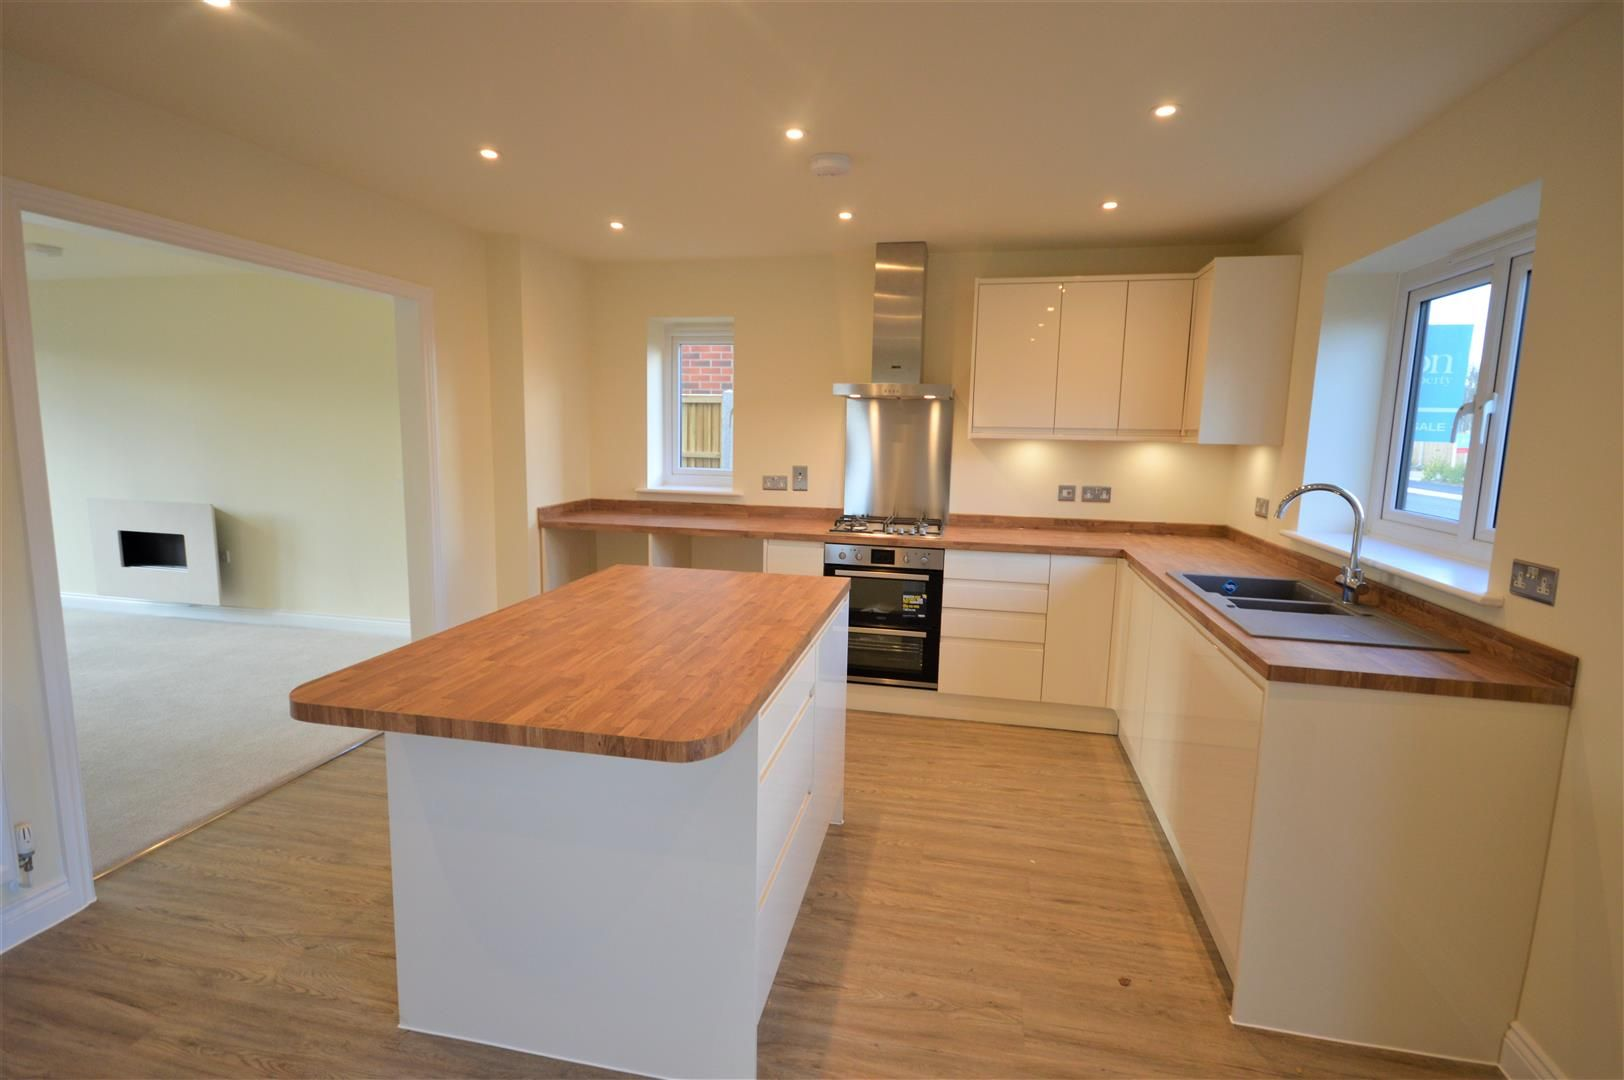 4 bed detached for sale in Kingsland 4